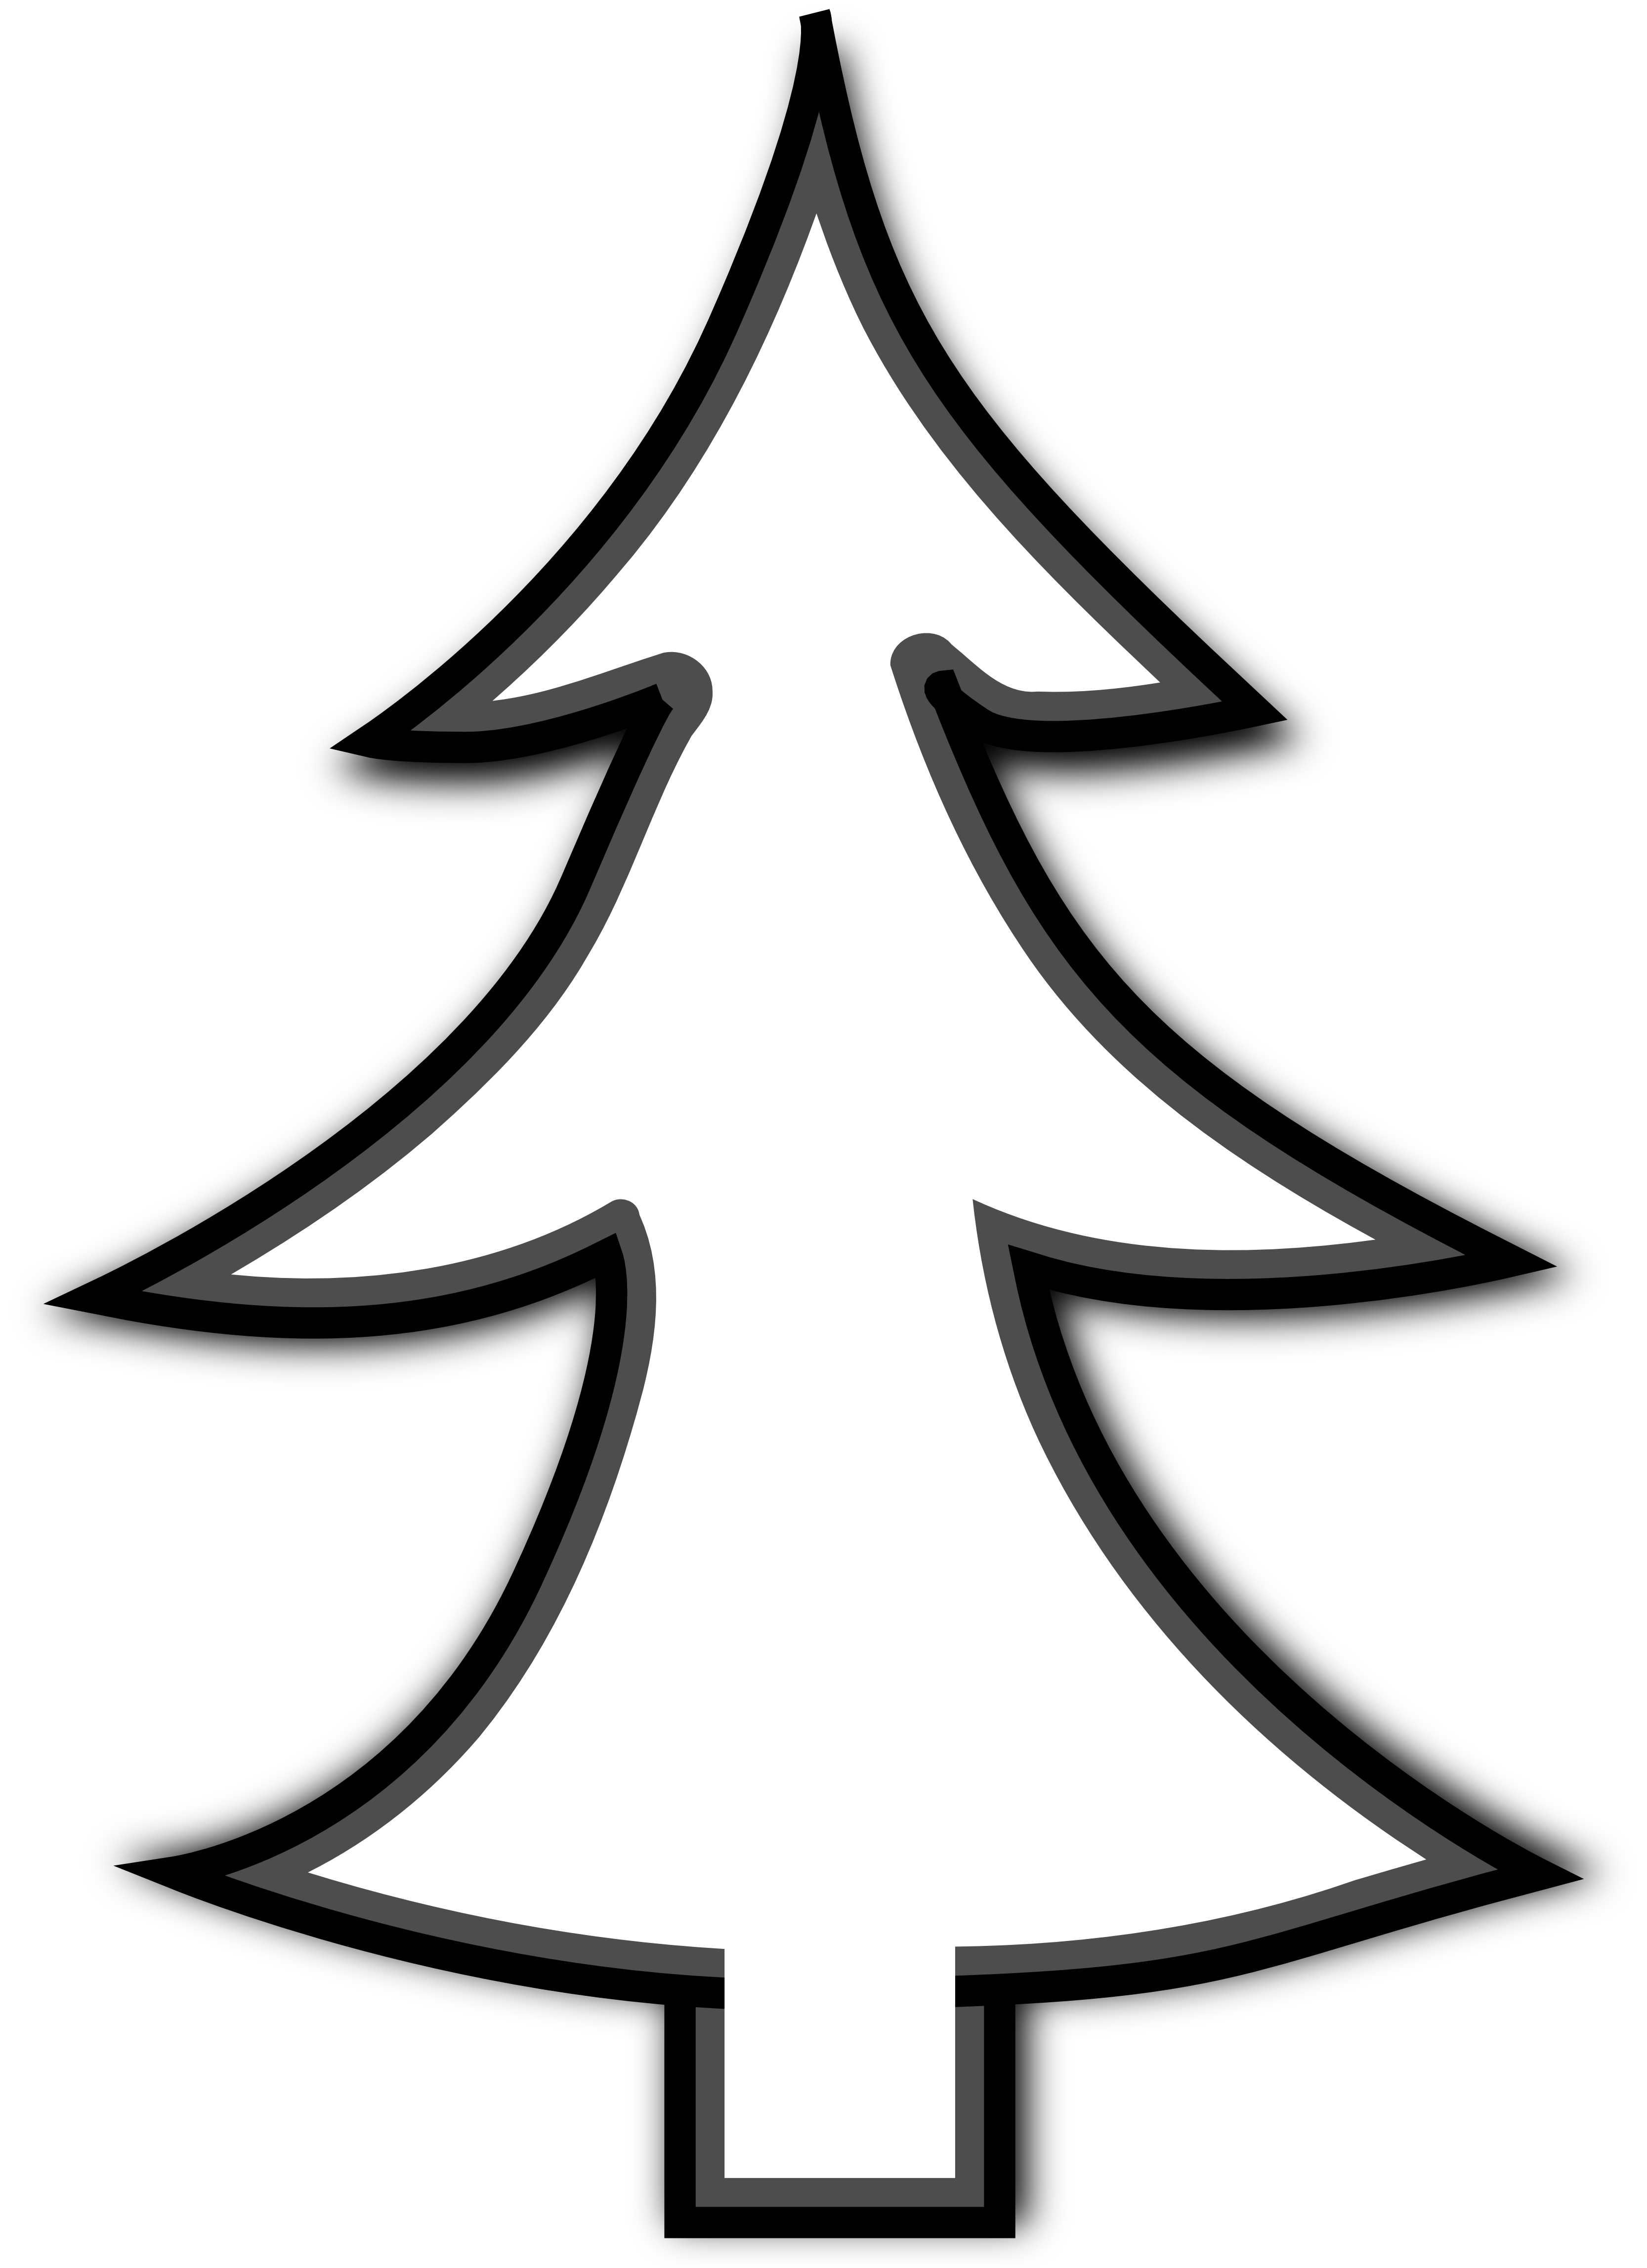 Christmas Tree Clip Art Black And White Christmas Tree Clipart Tree Clipart Tree Outline